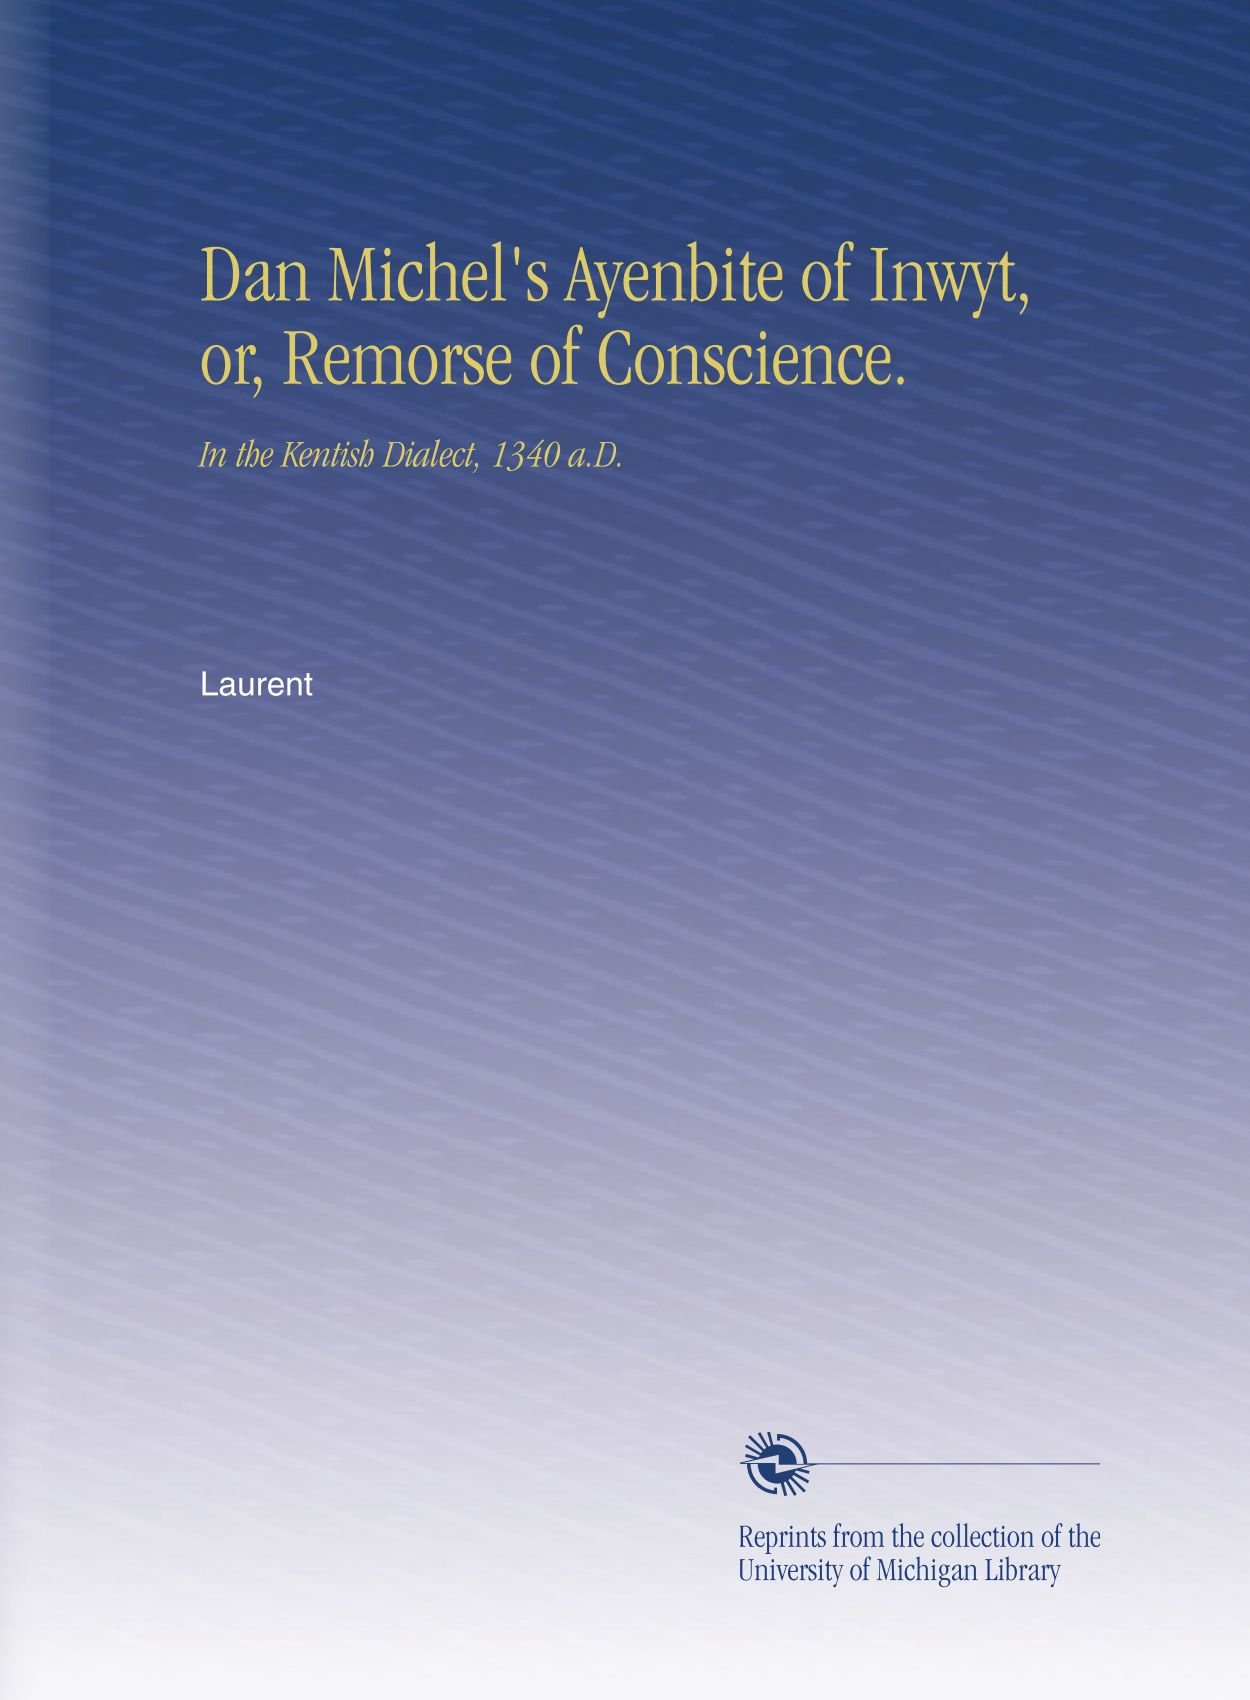 Download Dan Michel's Ayenbite of Inwyt, or, Remorse of Conscience.: In the Kentish Dialect, 1340 a.D. ebook